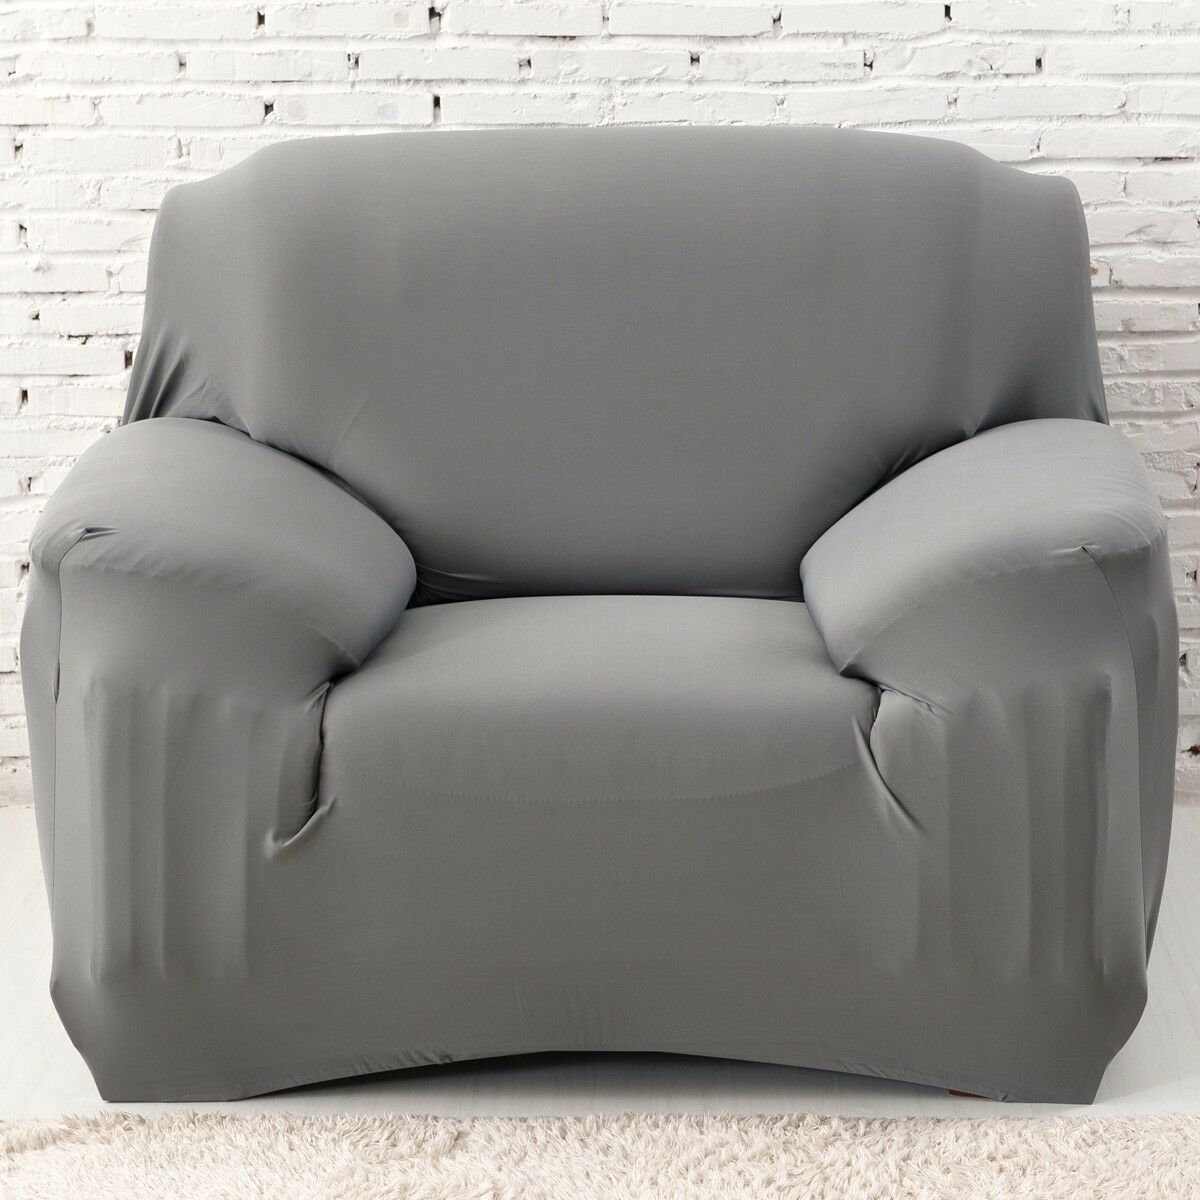 EASY-Stretch-Couch-Sofa-Lounge-Covers-Recliner-1-2-3-Seater-Dining-Chair-Cover thumbnail 75